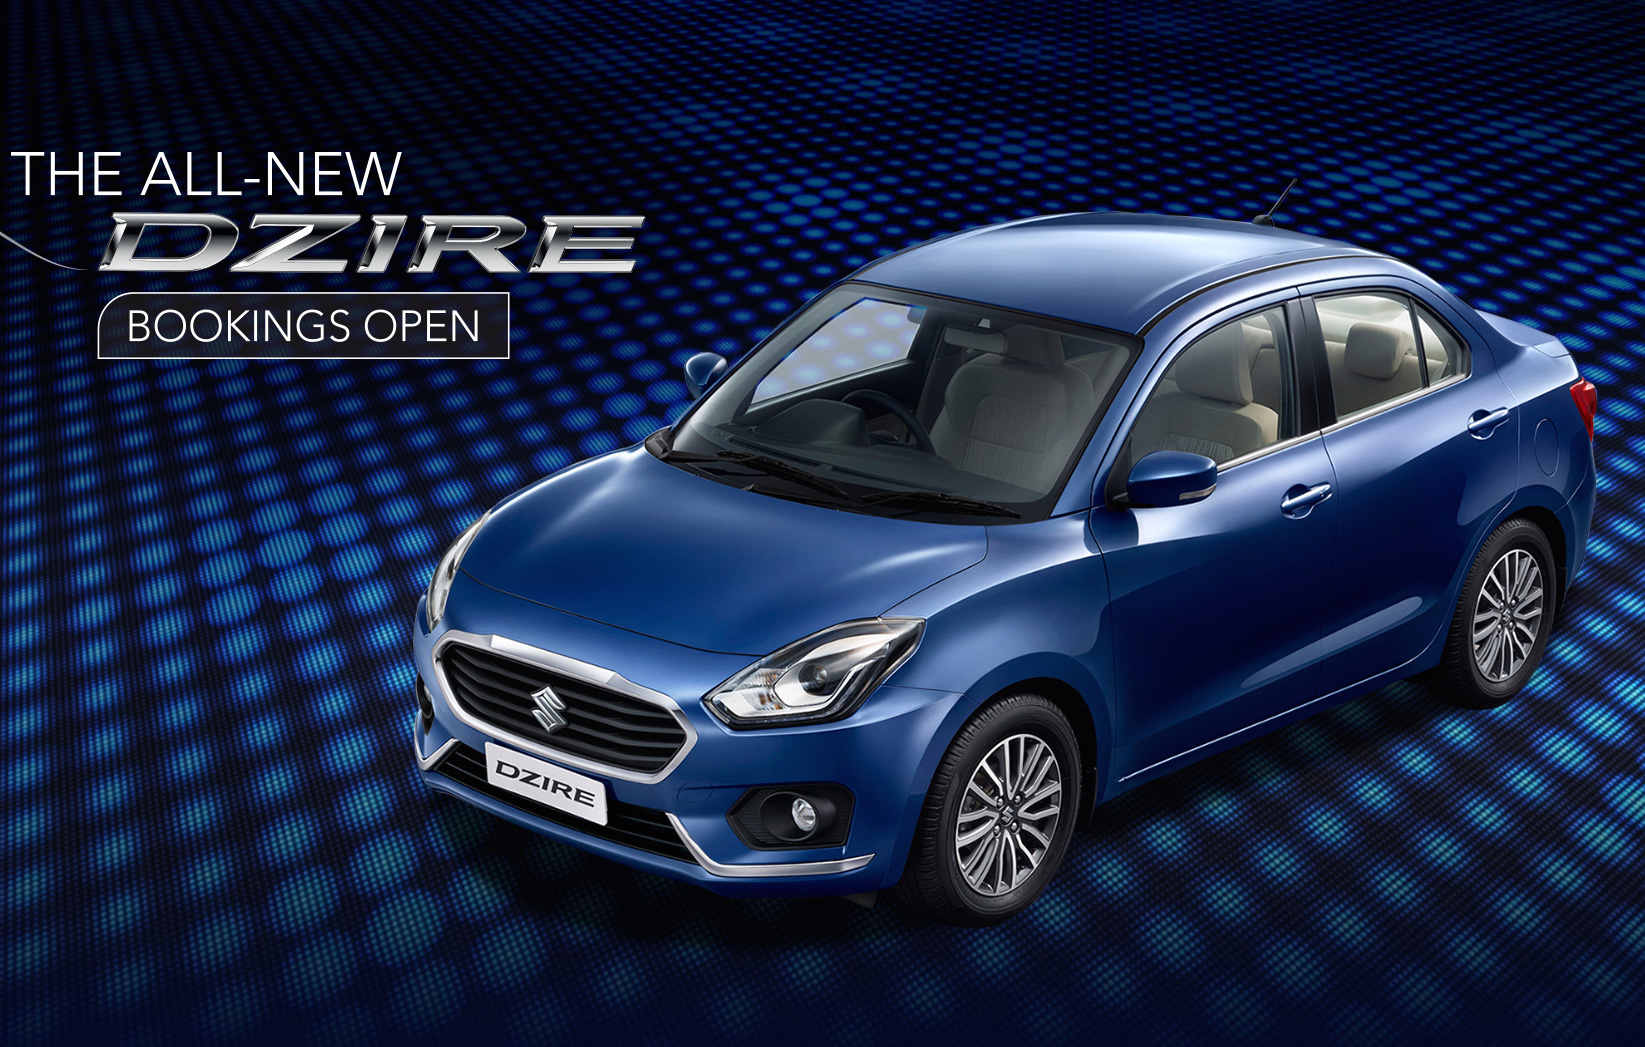 Maruti opens bookings for all new Dzire